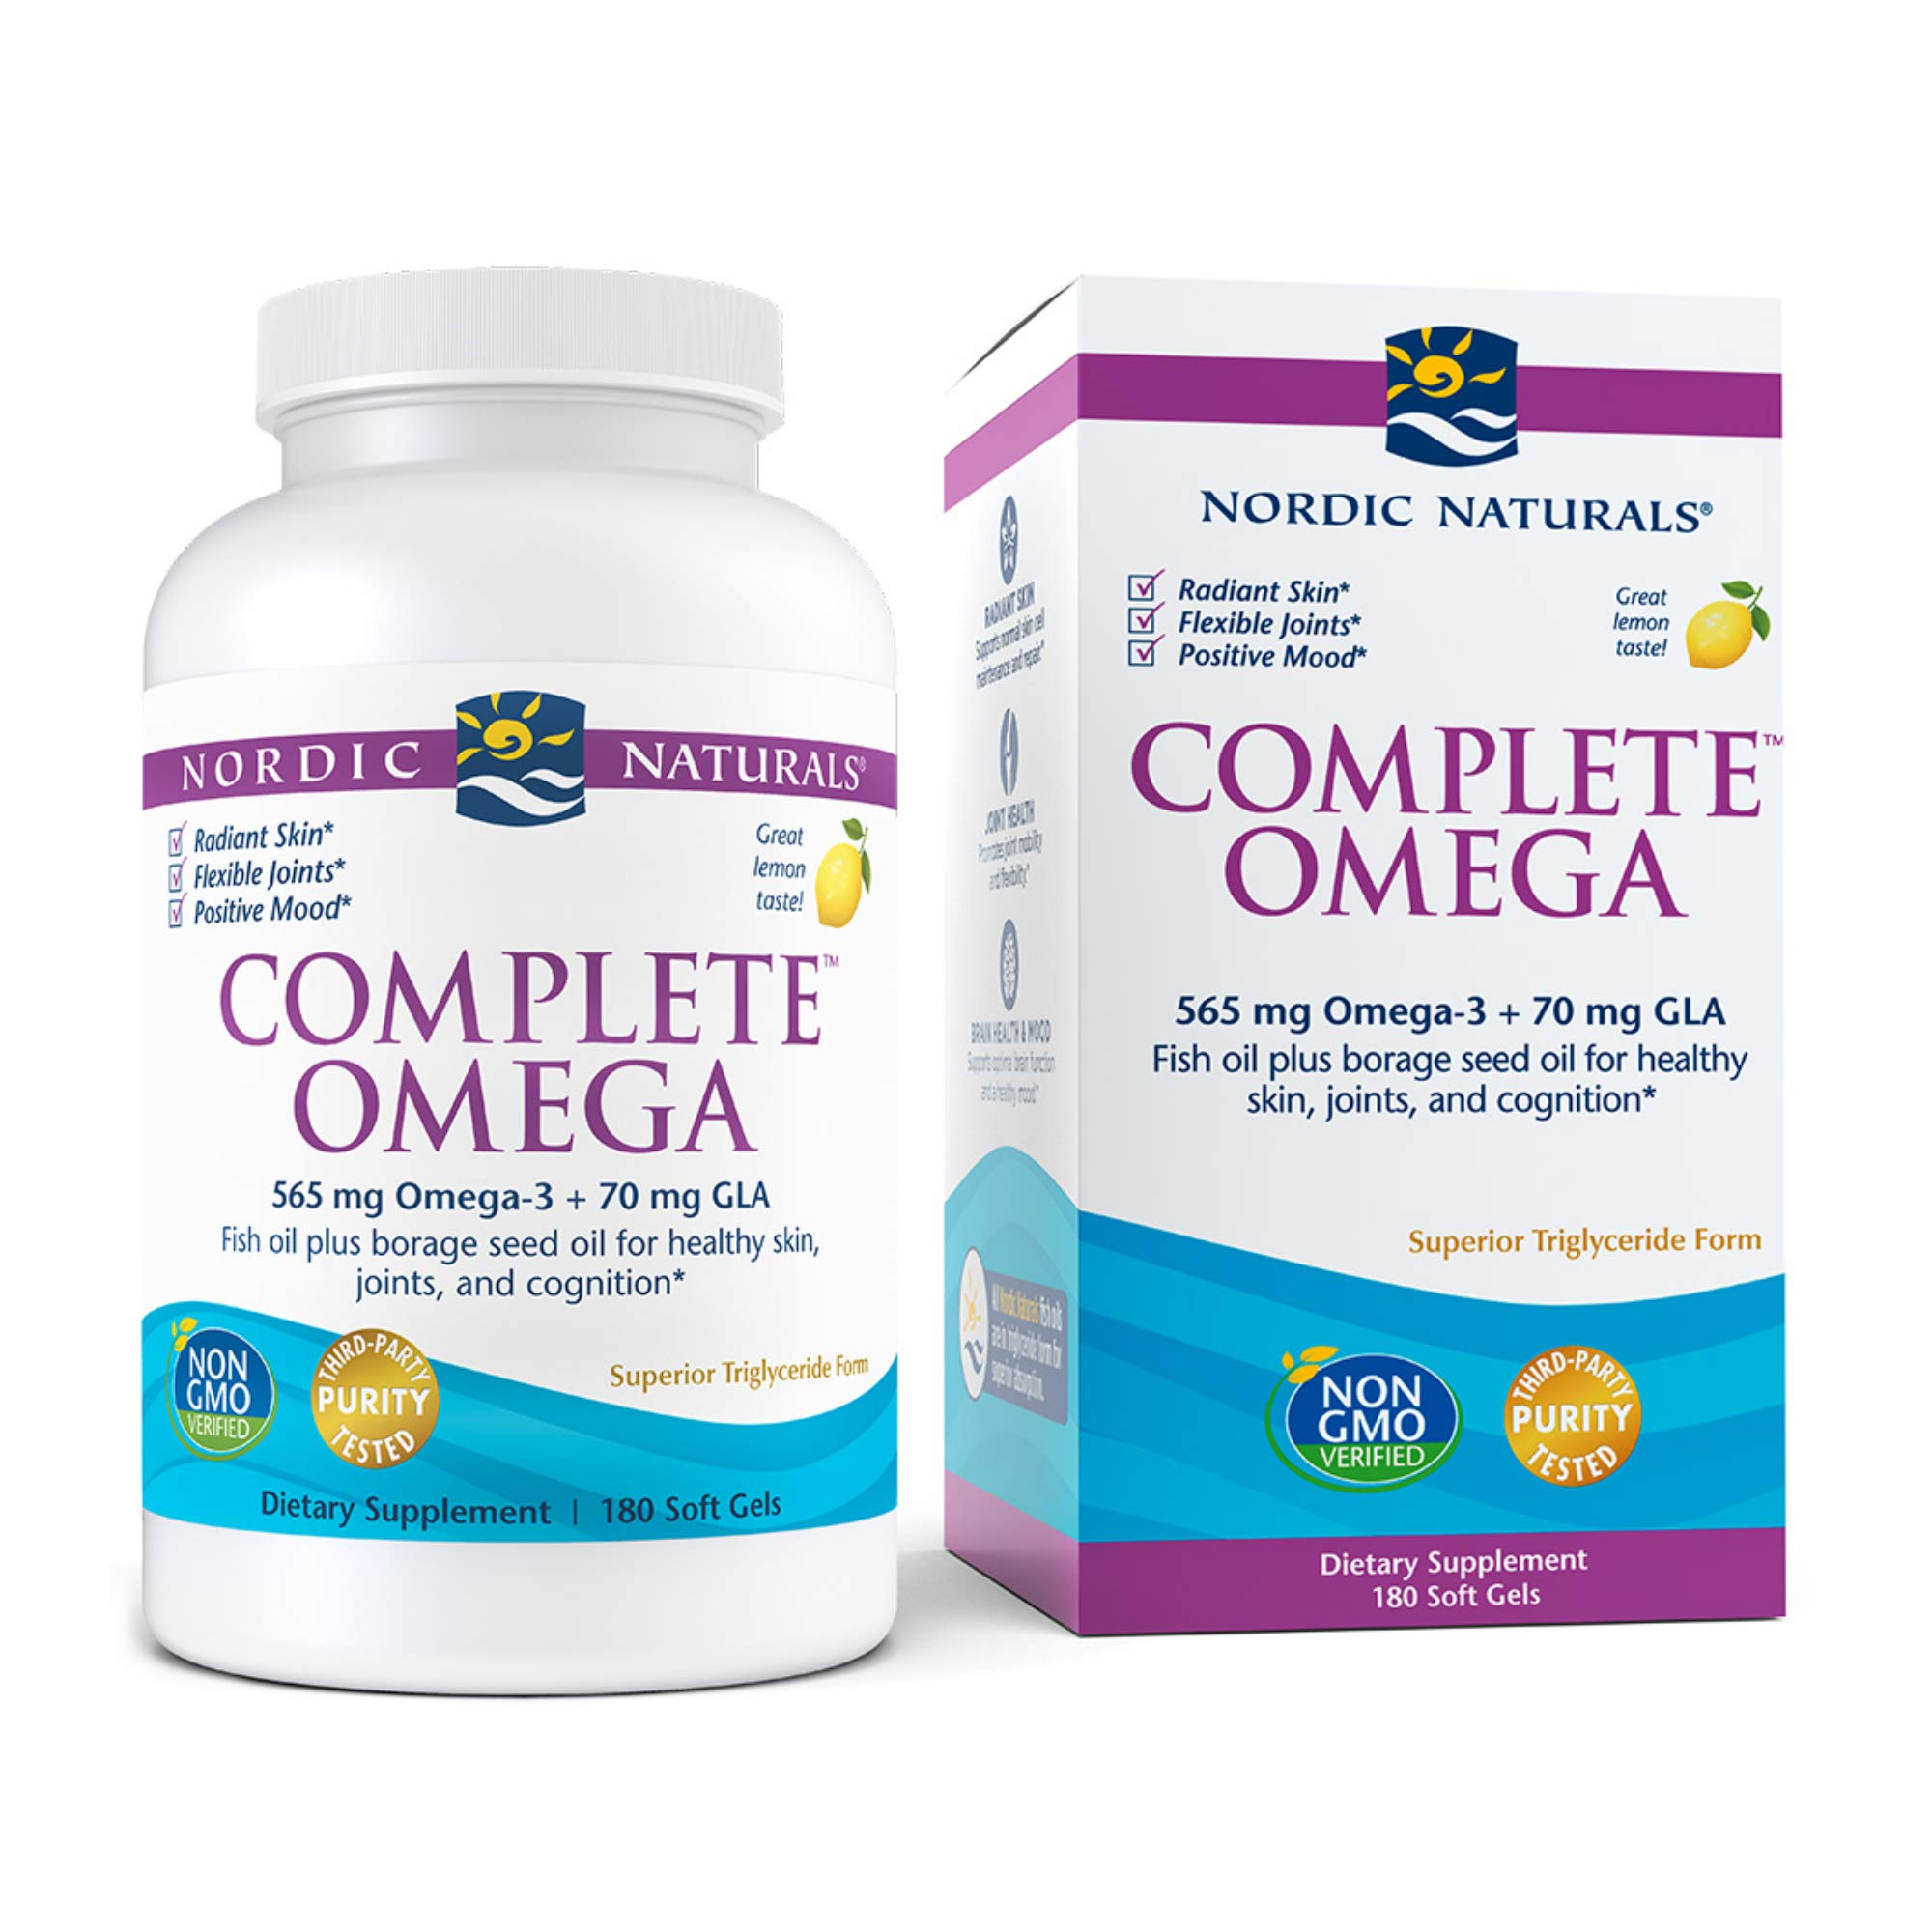 Nordic Naturals Complete Omega, Lemon Flavor - 565 mg Omega-3-180 Soft Gels - EPA & DHA with Added GLA - Healthy Skin & Joints, Cognition, Positive Mood - Non-GMO - 90 Servings